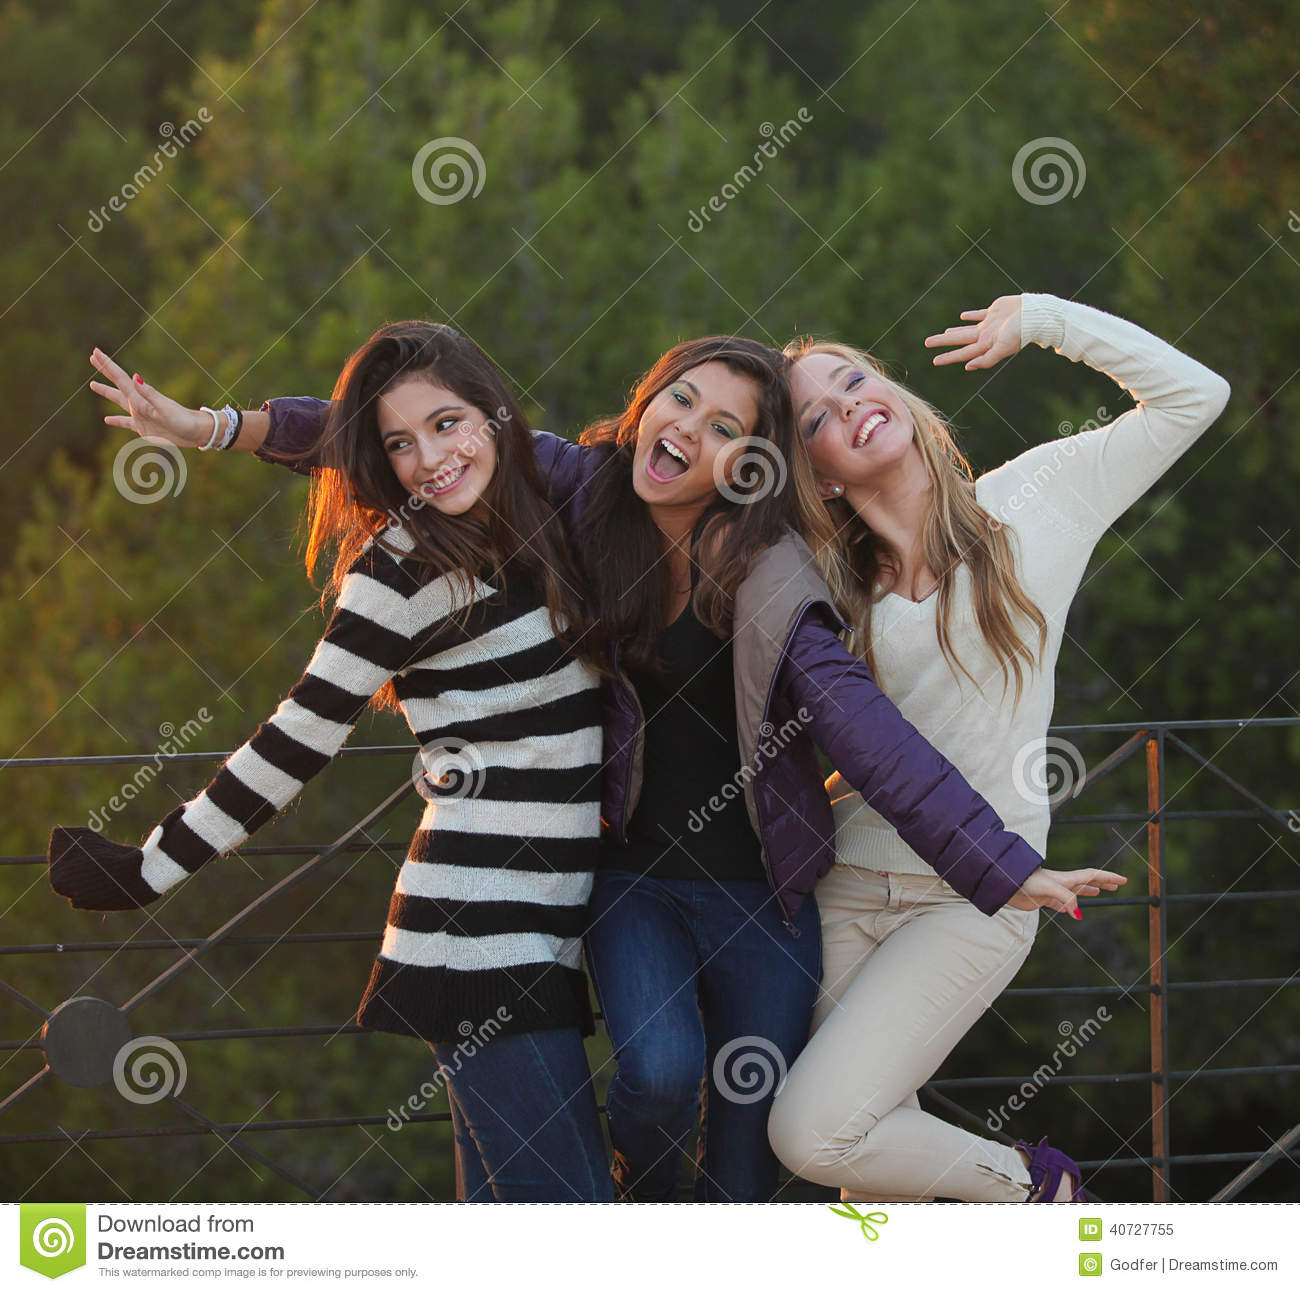 Group of happy friendly fashion teens